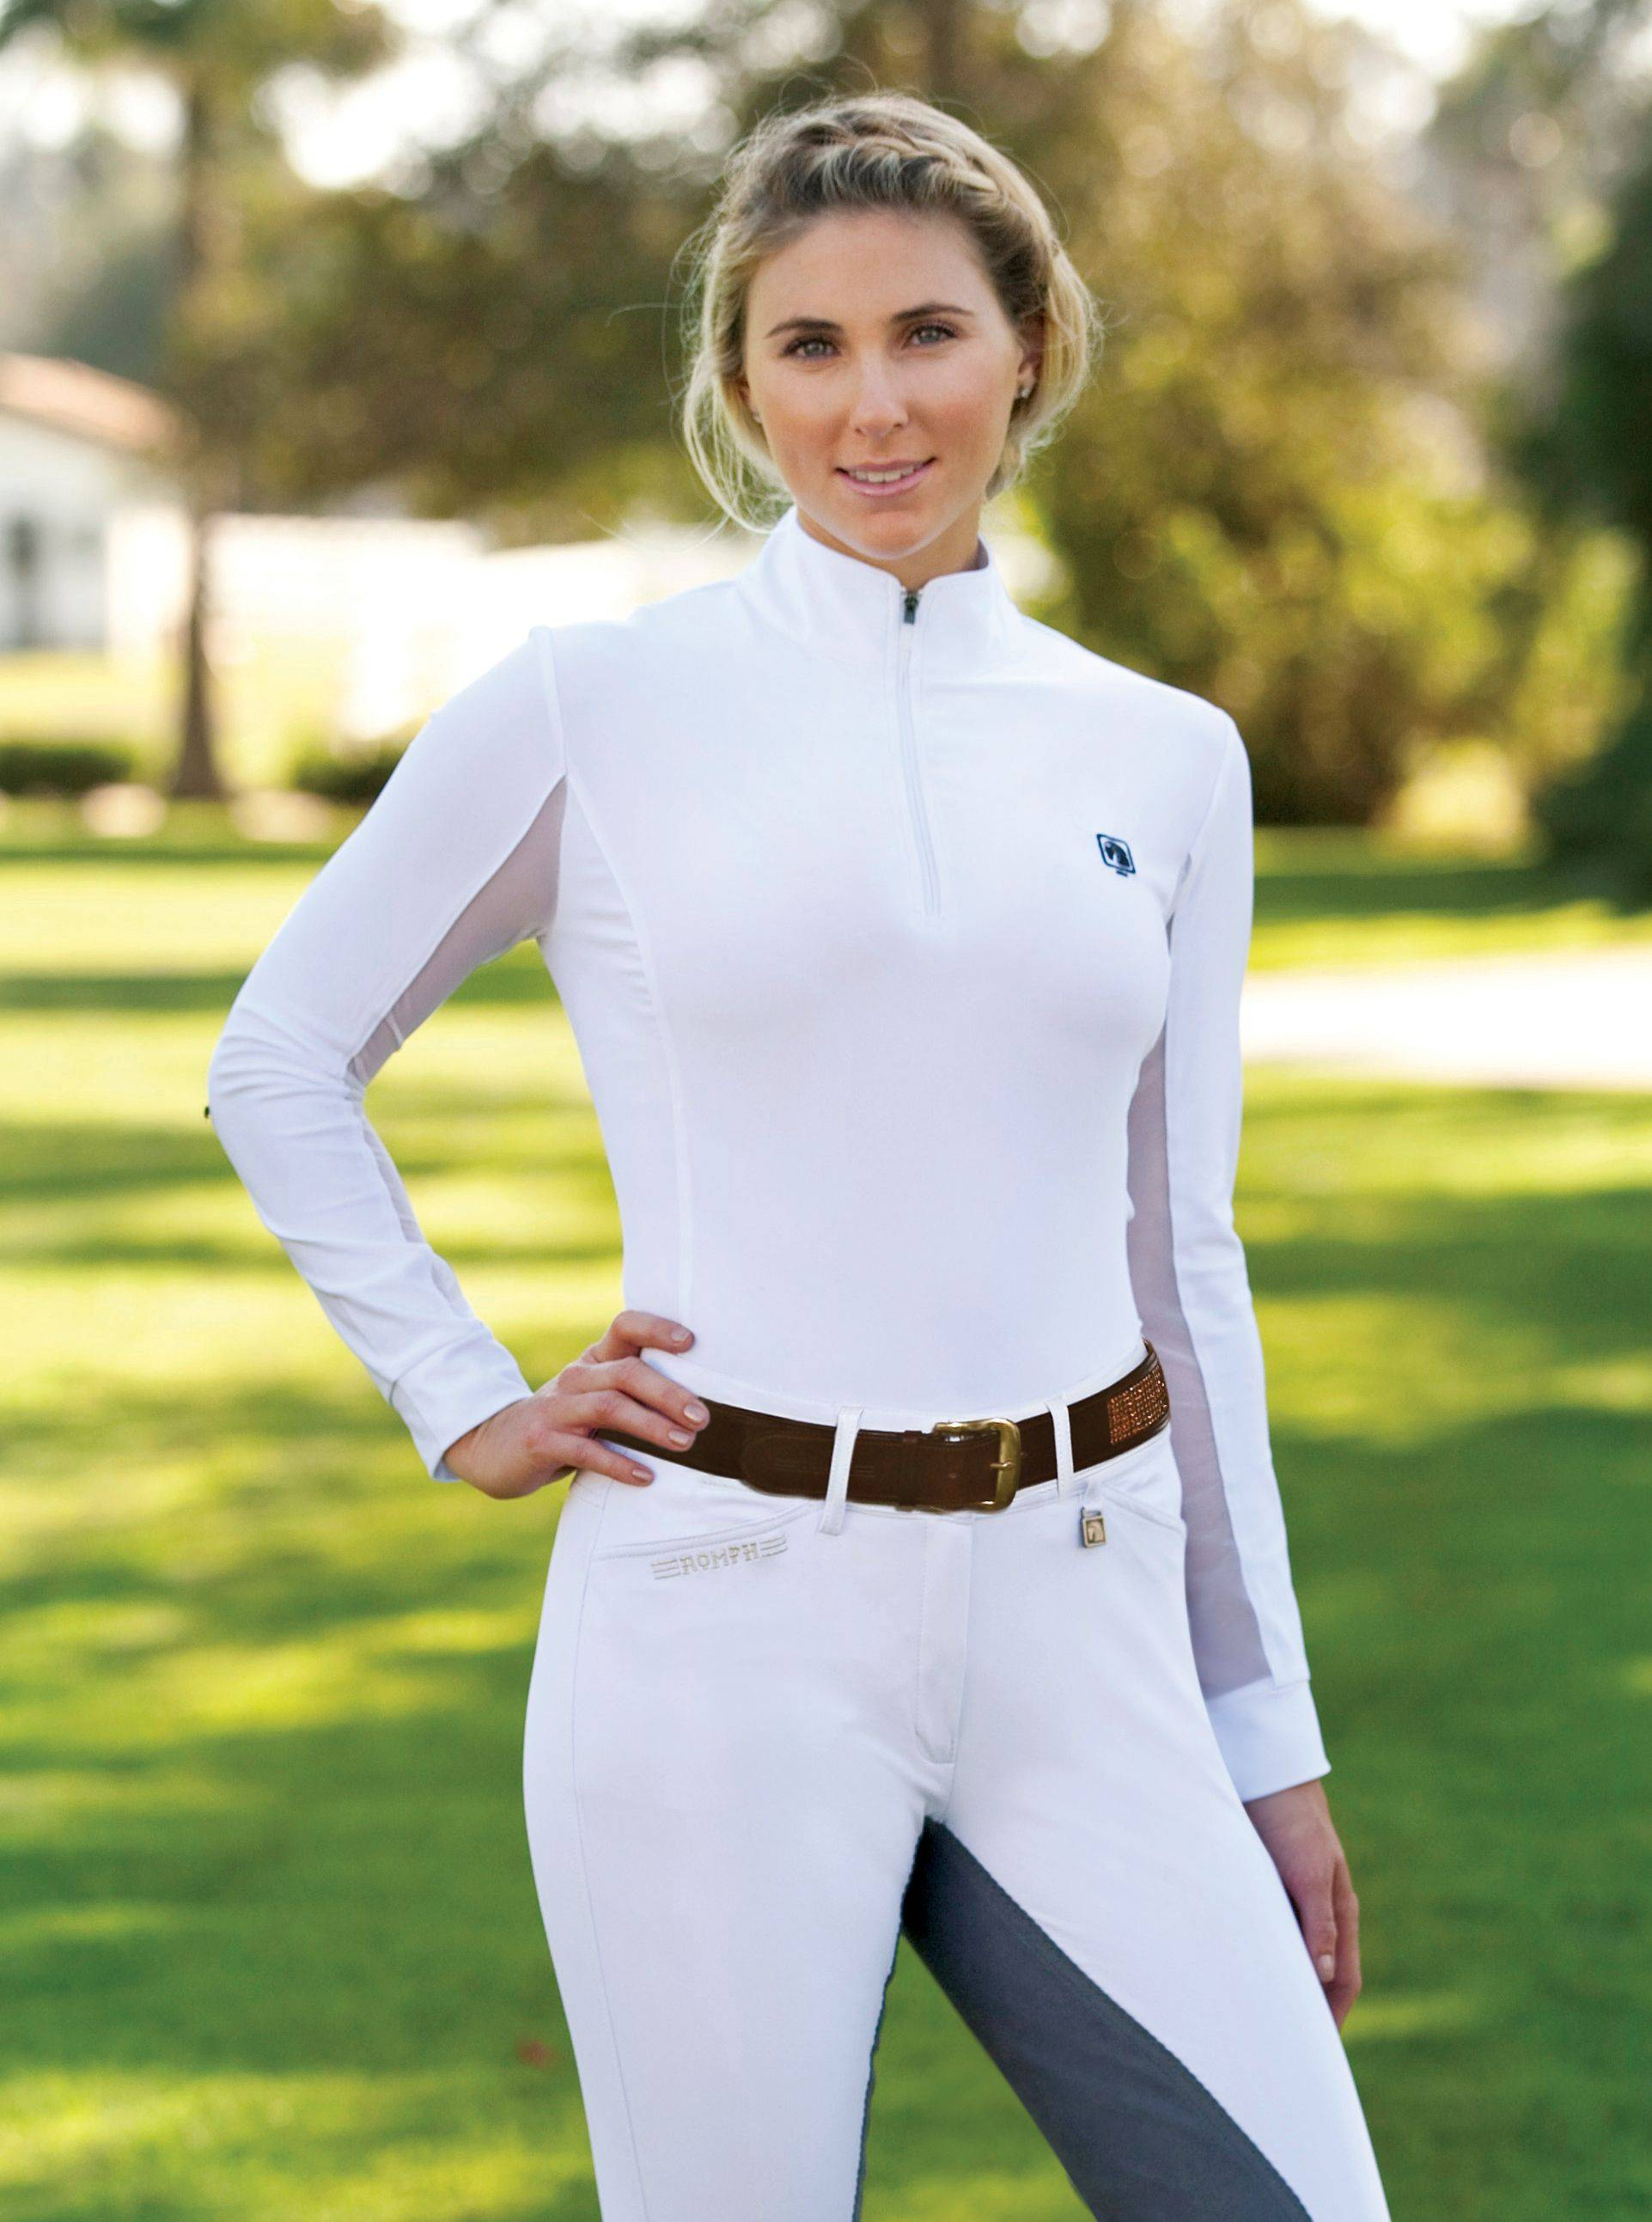 Romfh Pirouette Riding Shirt - Ladies, Long Sleeve